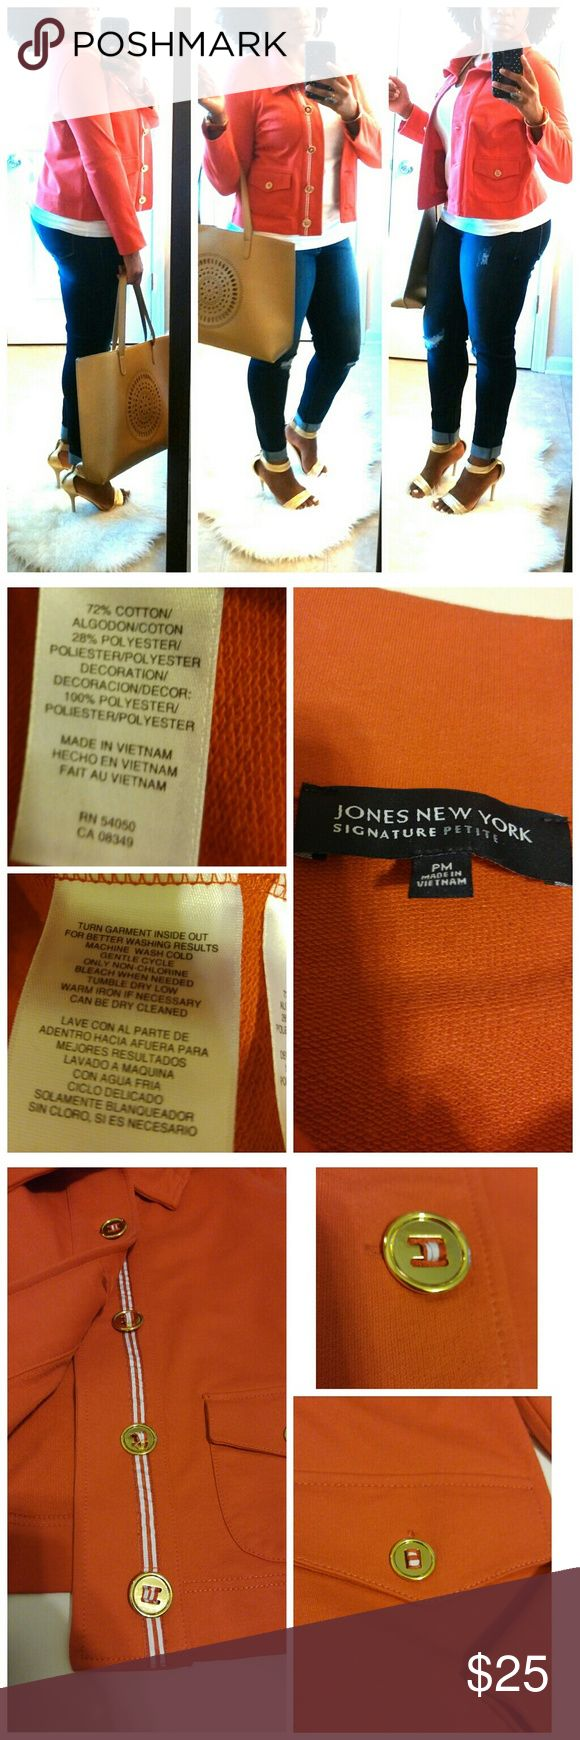 Jones New York Signature Stretch Coral Jacket *This wonderful jacket by Jones New York is really cute!  It is coral, with beautiful gold buttons.  It has two front pockets, and a button down front closure.  It has a really nice comfortable stretch.  It is in great condition.  This is a nice jacket, that is truly versatile.  You can throw on some heels, or sneakers with it!* Jones New York Jackets & Coats